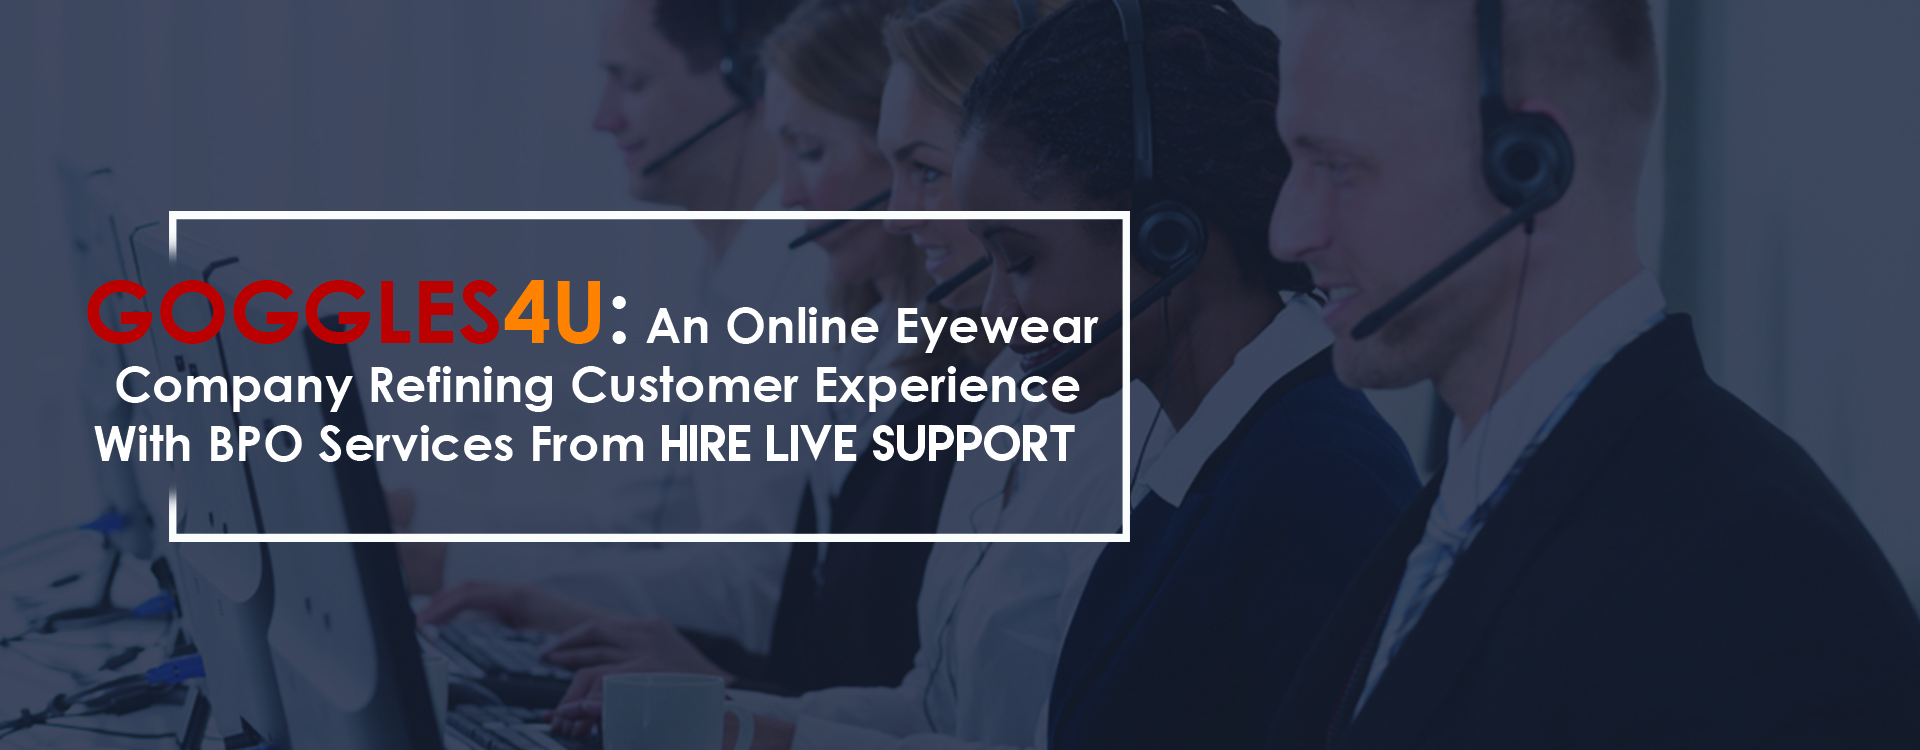 Goggles4U: An Online Eyewear Company Refining Customer Experience From BPO Services By Hire Live Support